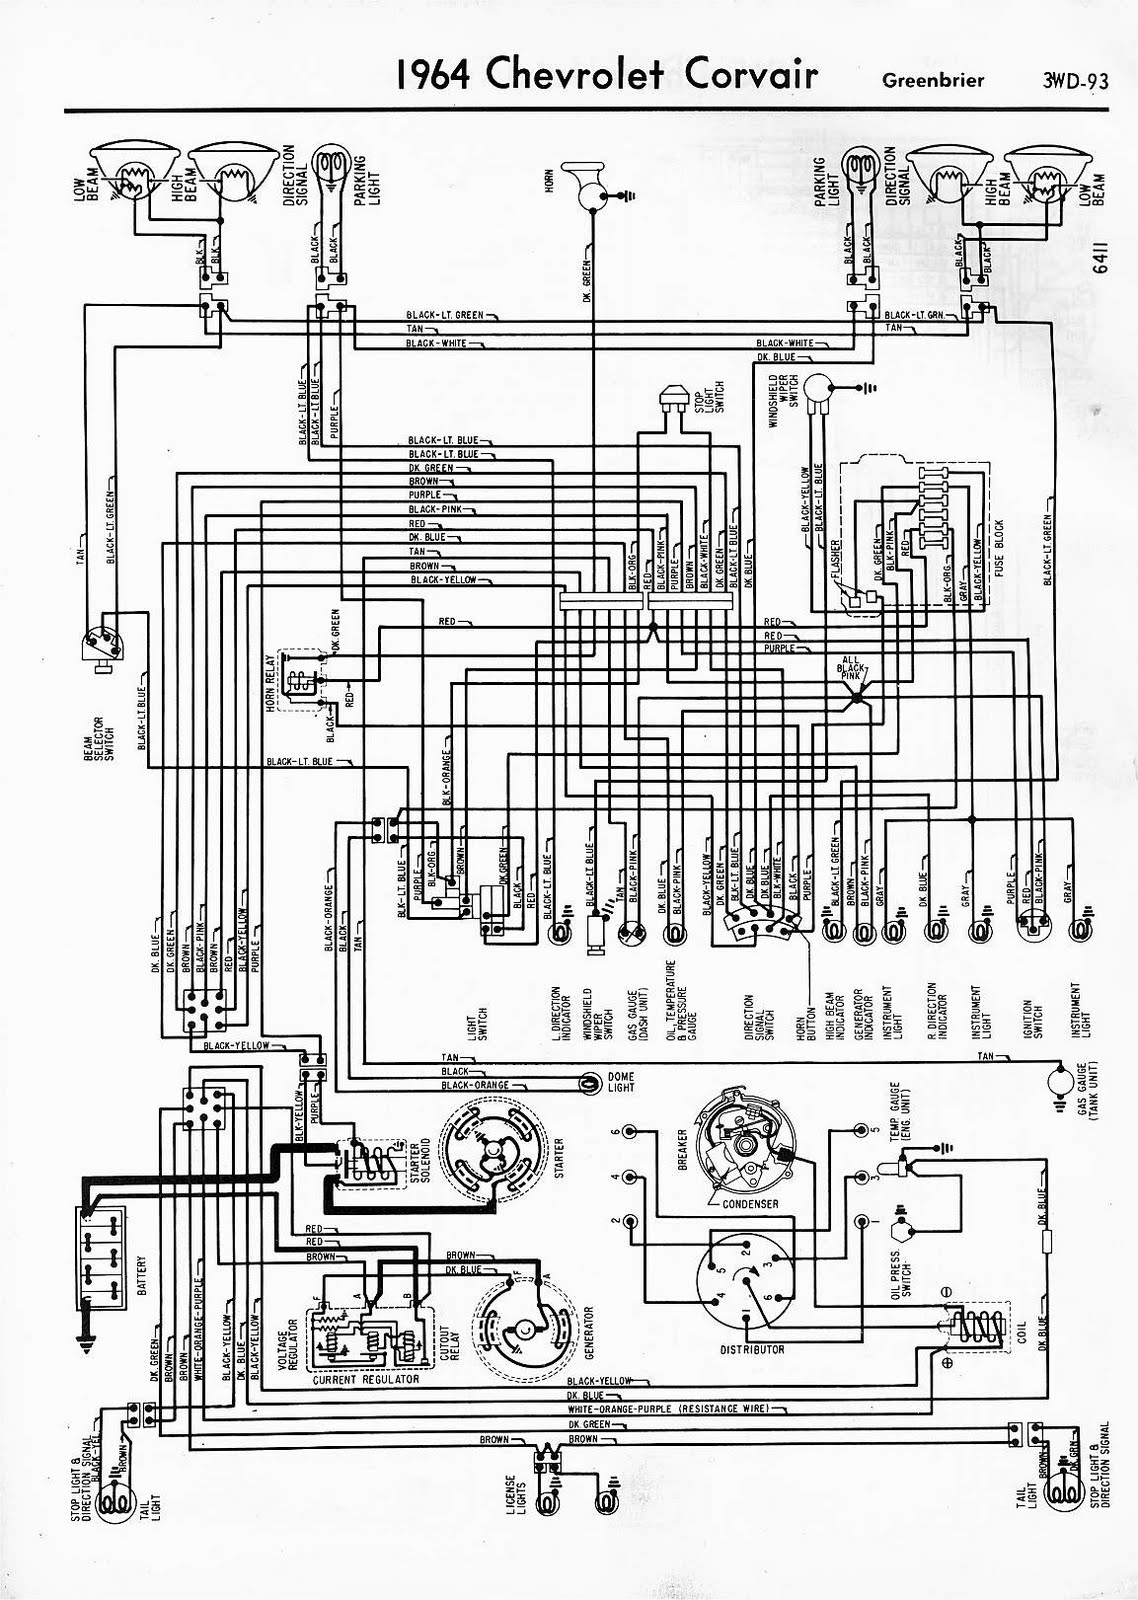 free auto wiring diagram 1964 chevrolet corvair 2000 F150 Fuse Panel  Diagram Ford E-250 Fuse Box Diagram